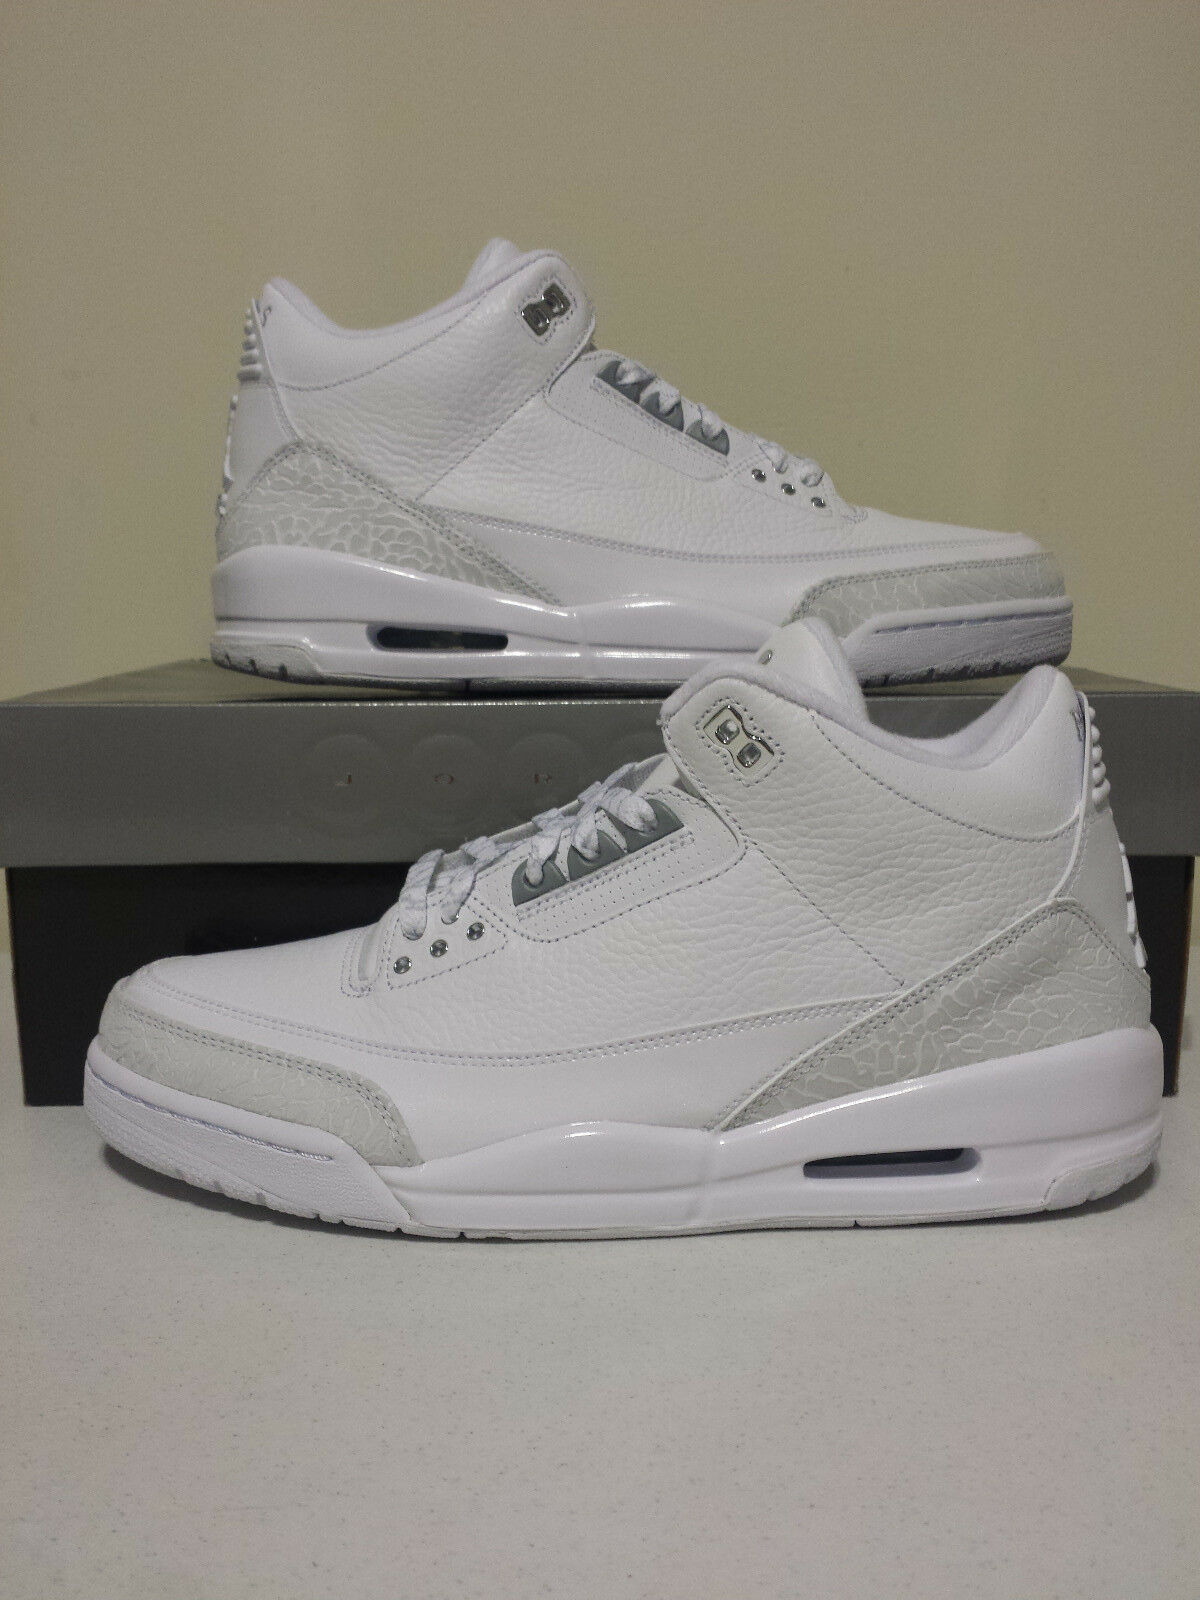 Nike Air Jordan Retro 3 III 25th Anniversary SZ 11 398613-102 2010 Release